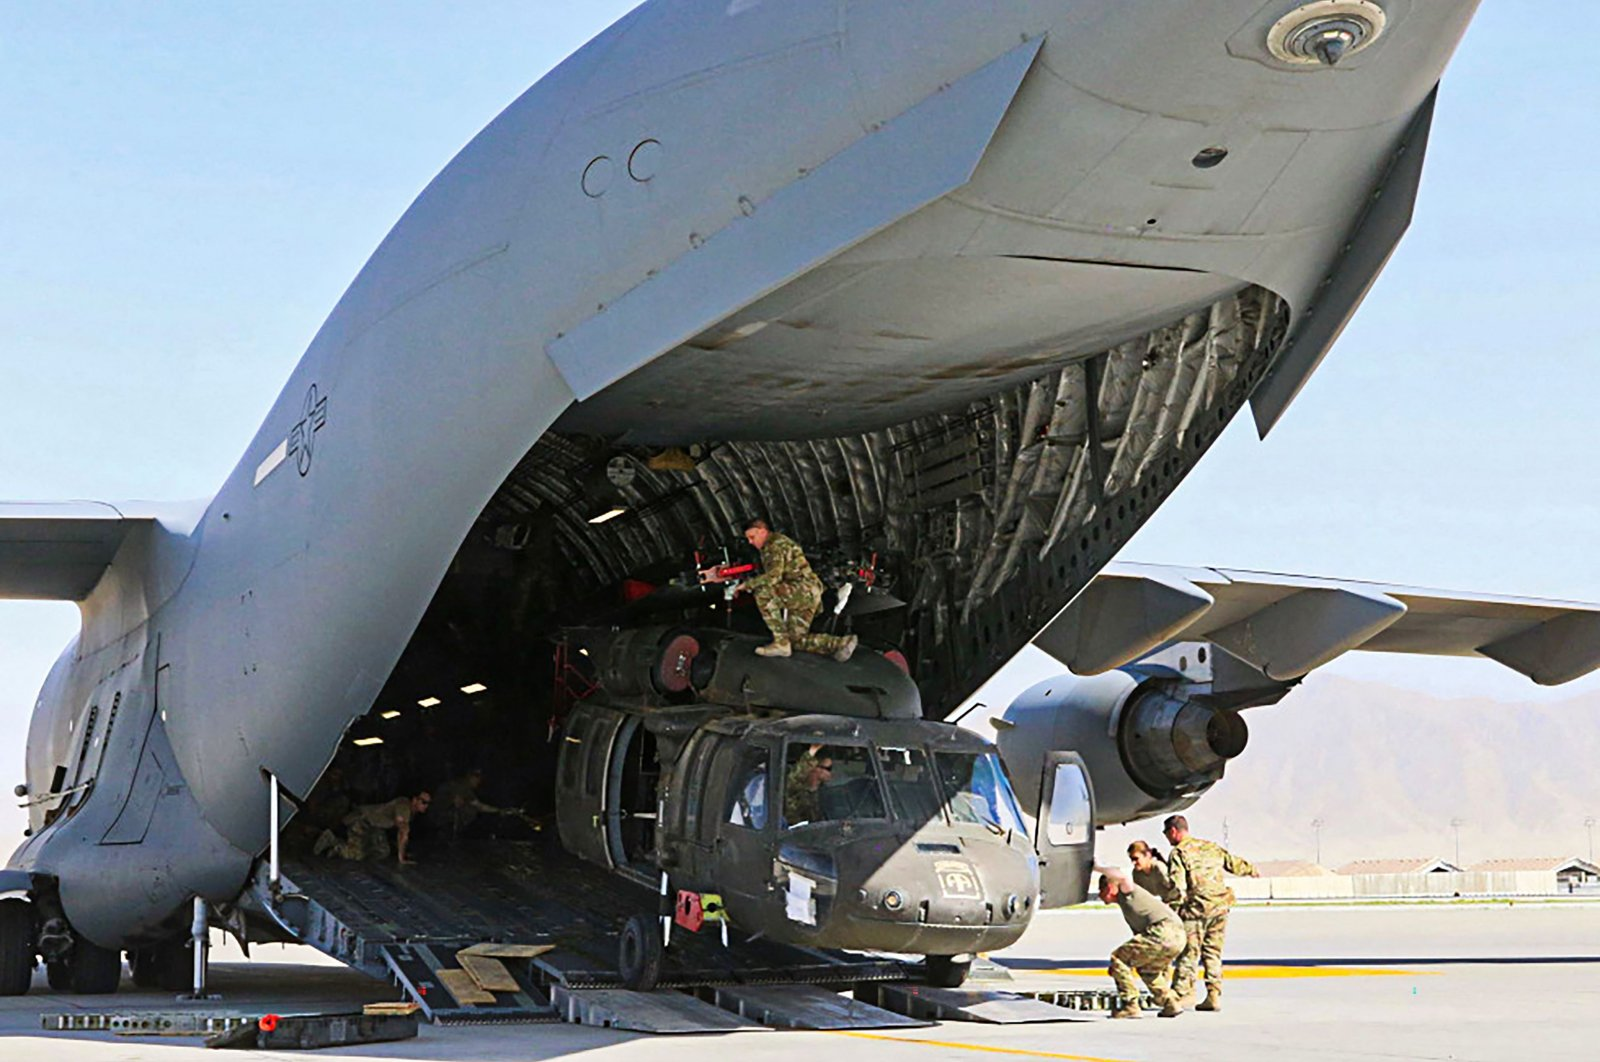 The U.S. Defense Visual Information Distribution Service (DVIDS) Aerial porters work with maintainers to load a UH-60L Blackhawk helicopter into a C-17 Globemaster III in support of the Resolute Support retrograde mission in Bagram, Afghanistan, June 29, 2021. (Photo by Sgt 1st Class Corey Vandiver/U.S. Defense Visual Information Distribution Service via AFP)